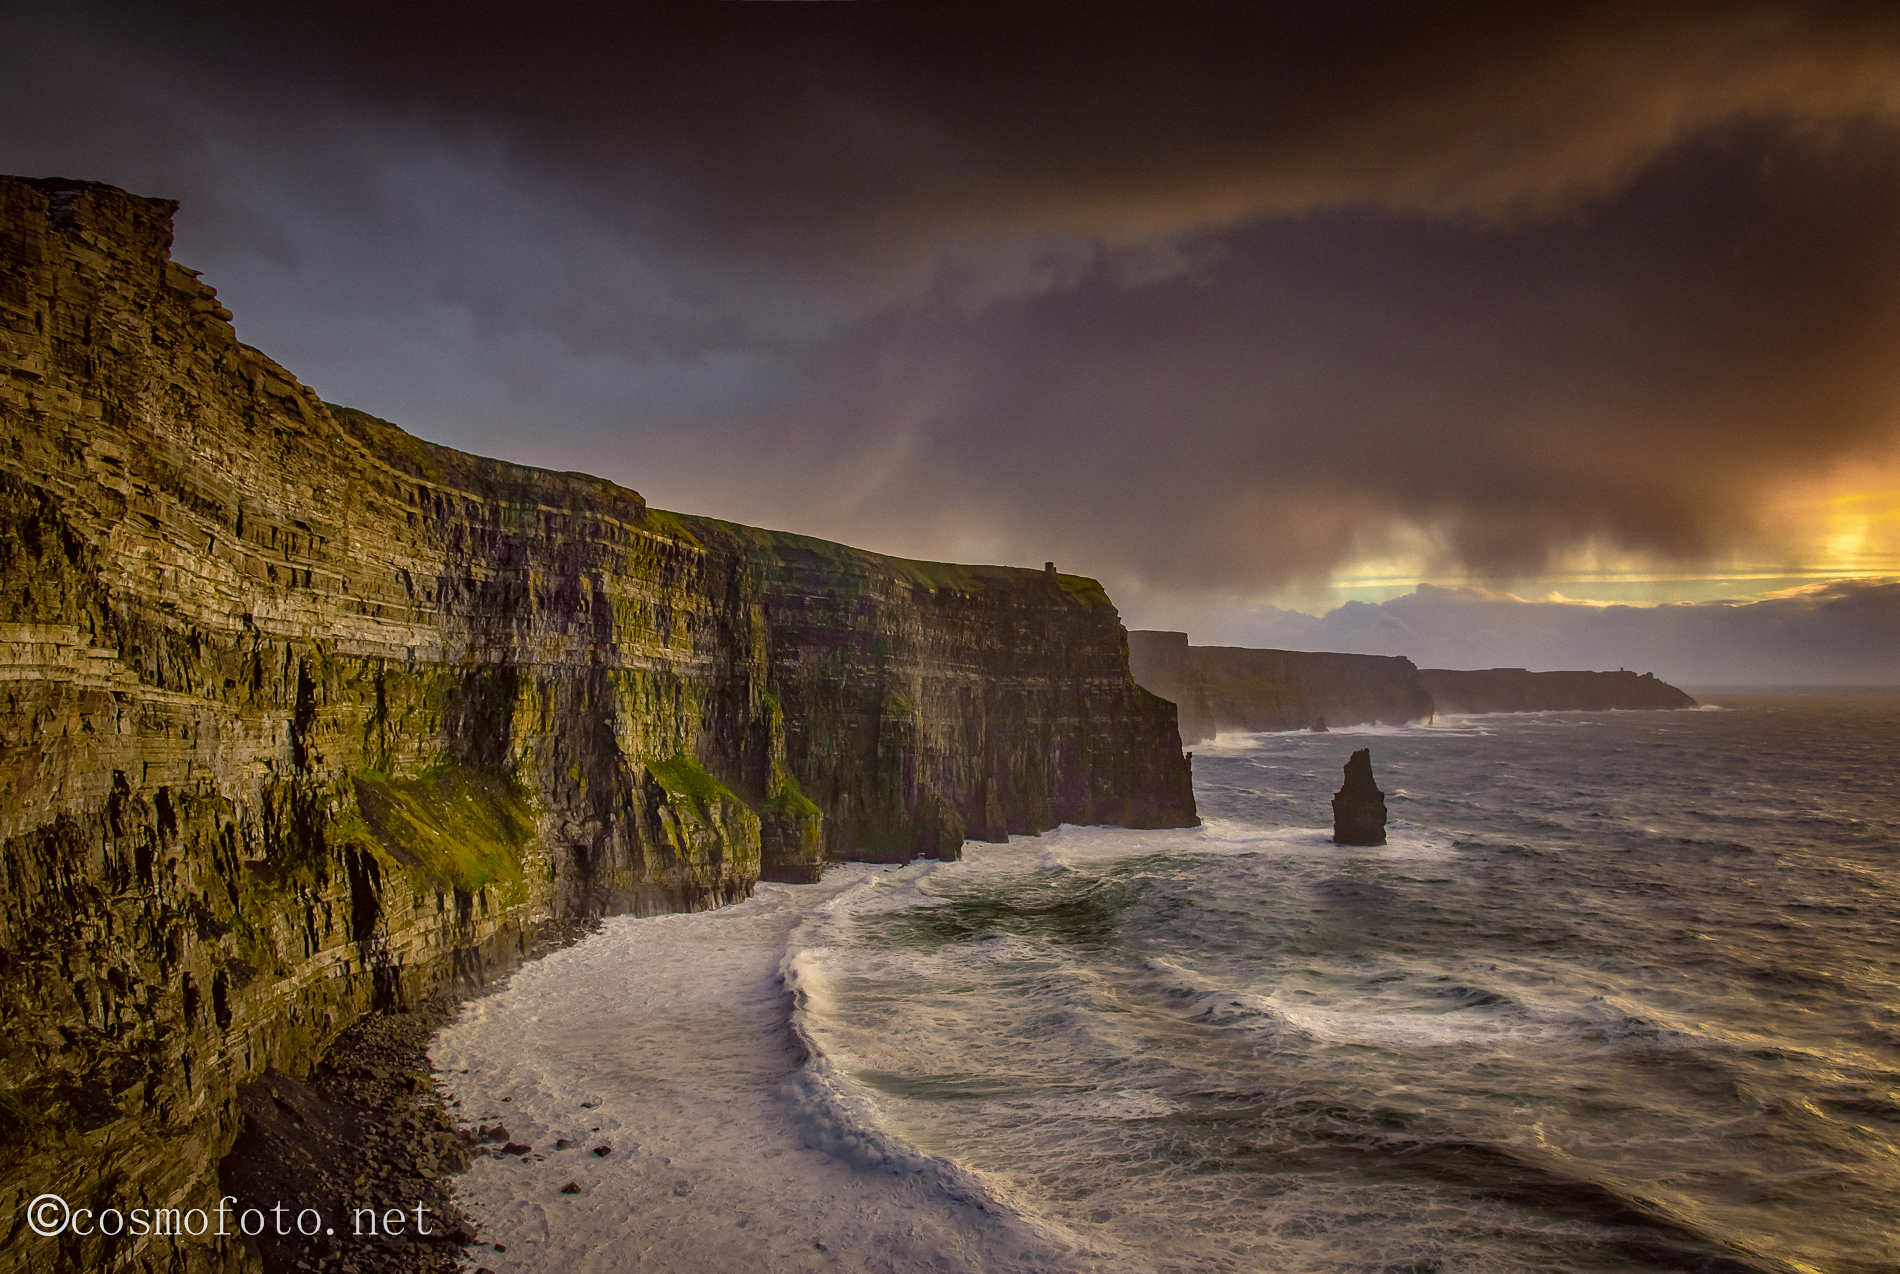 Sunset over the sea, Cliffs of Moher, Ireland